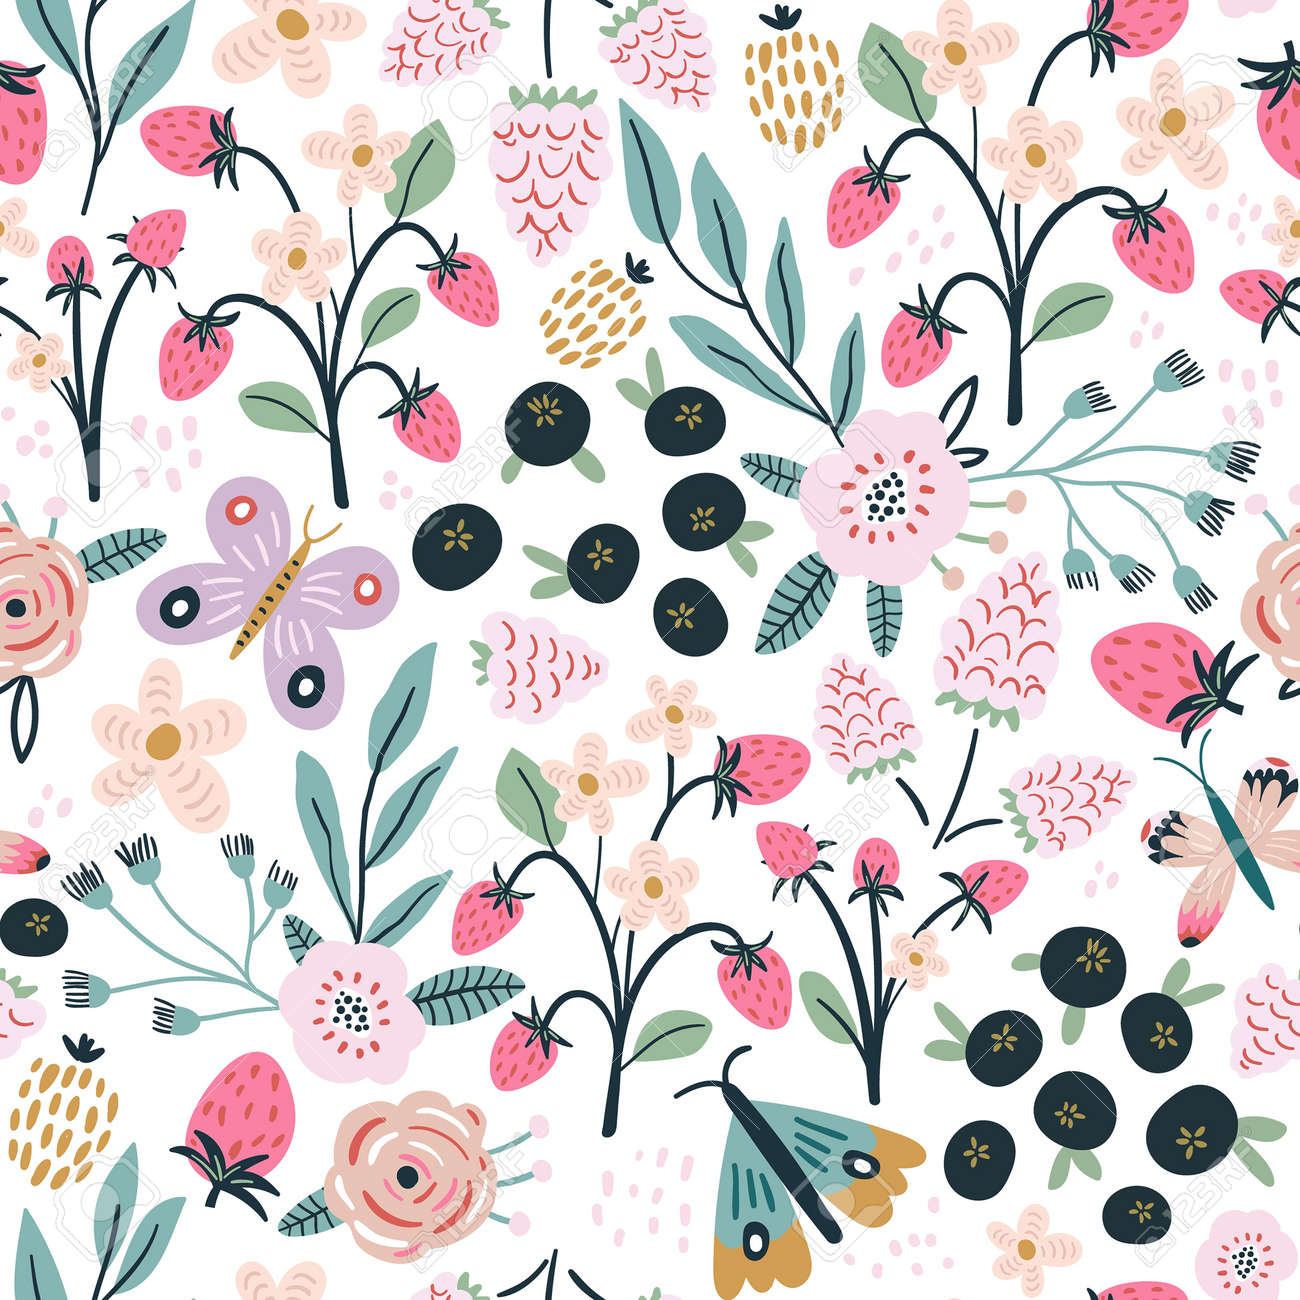 Seamless pattern with flowers, blueberry and leaves, rasberry, butterfly. Creative hight detailed floral texture. Great for fabric, textile Vector Illustration - 169707723